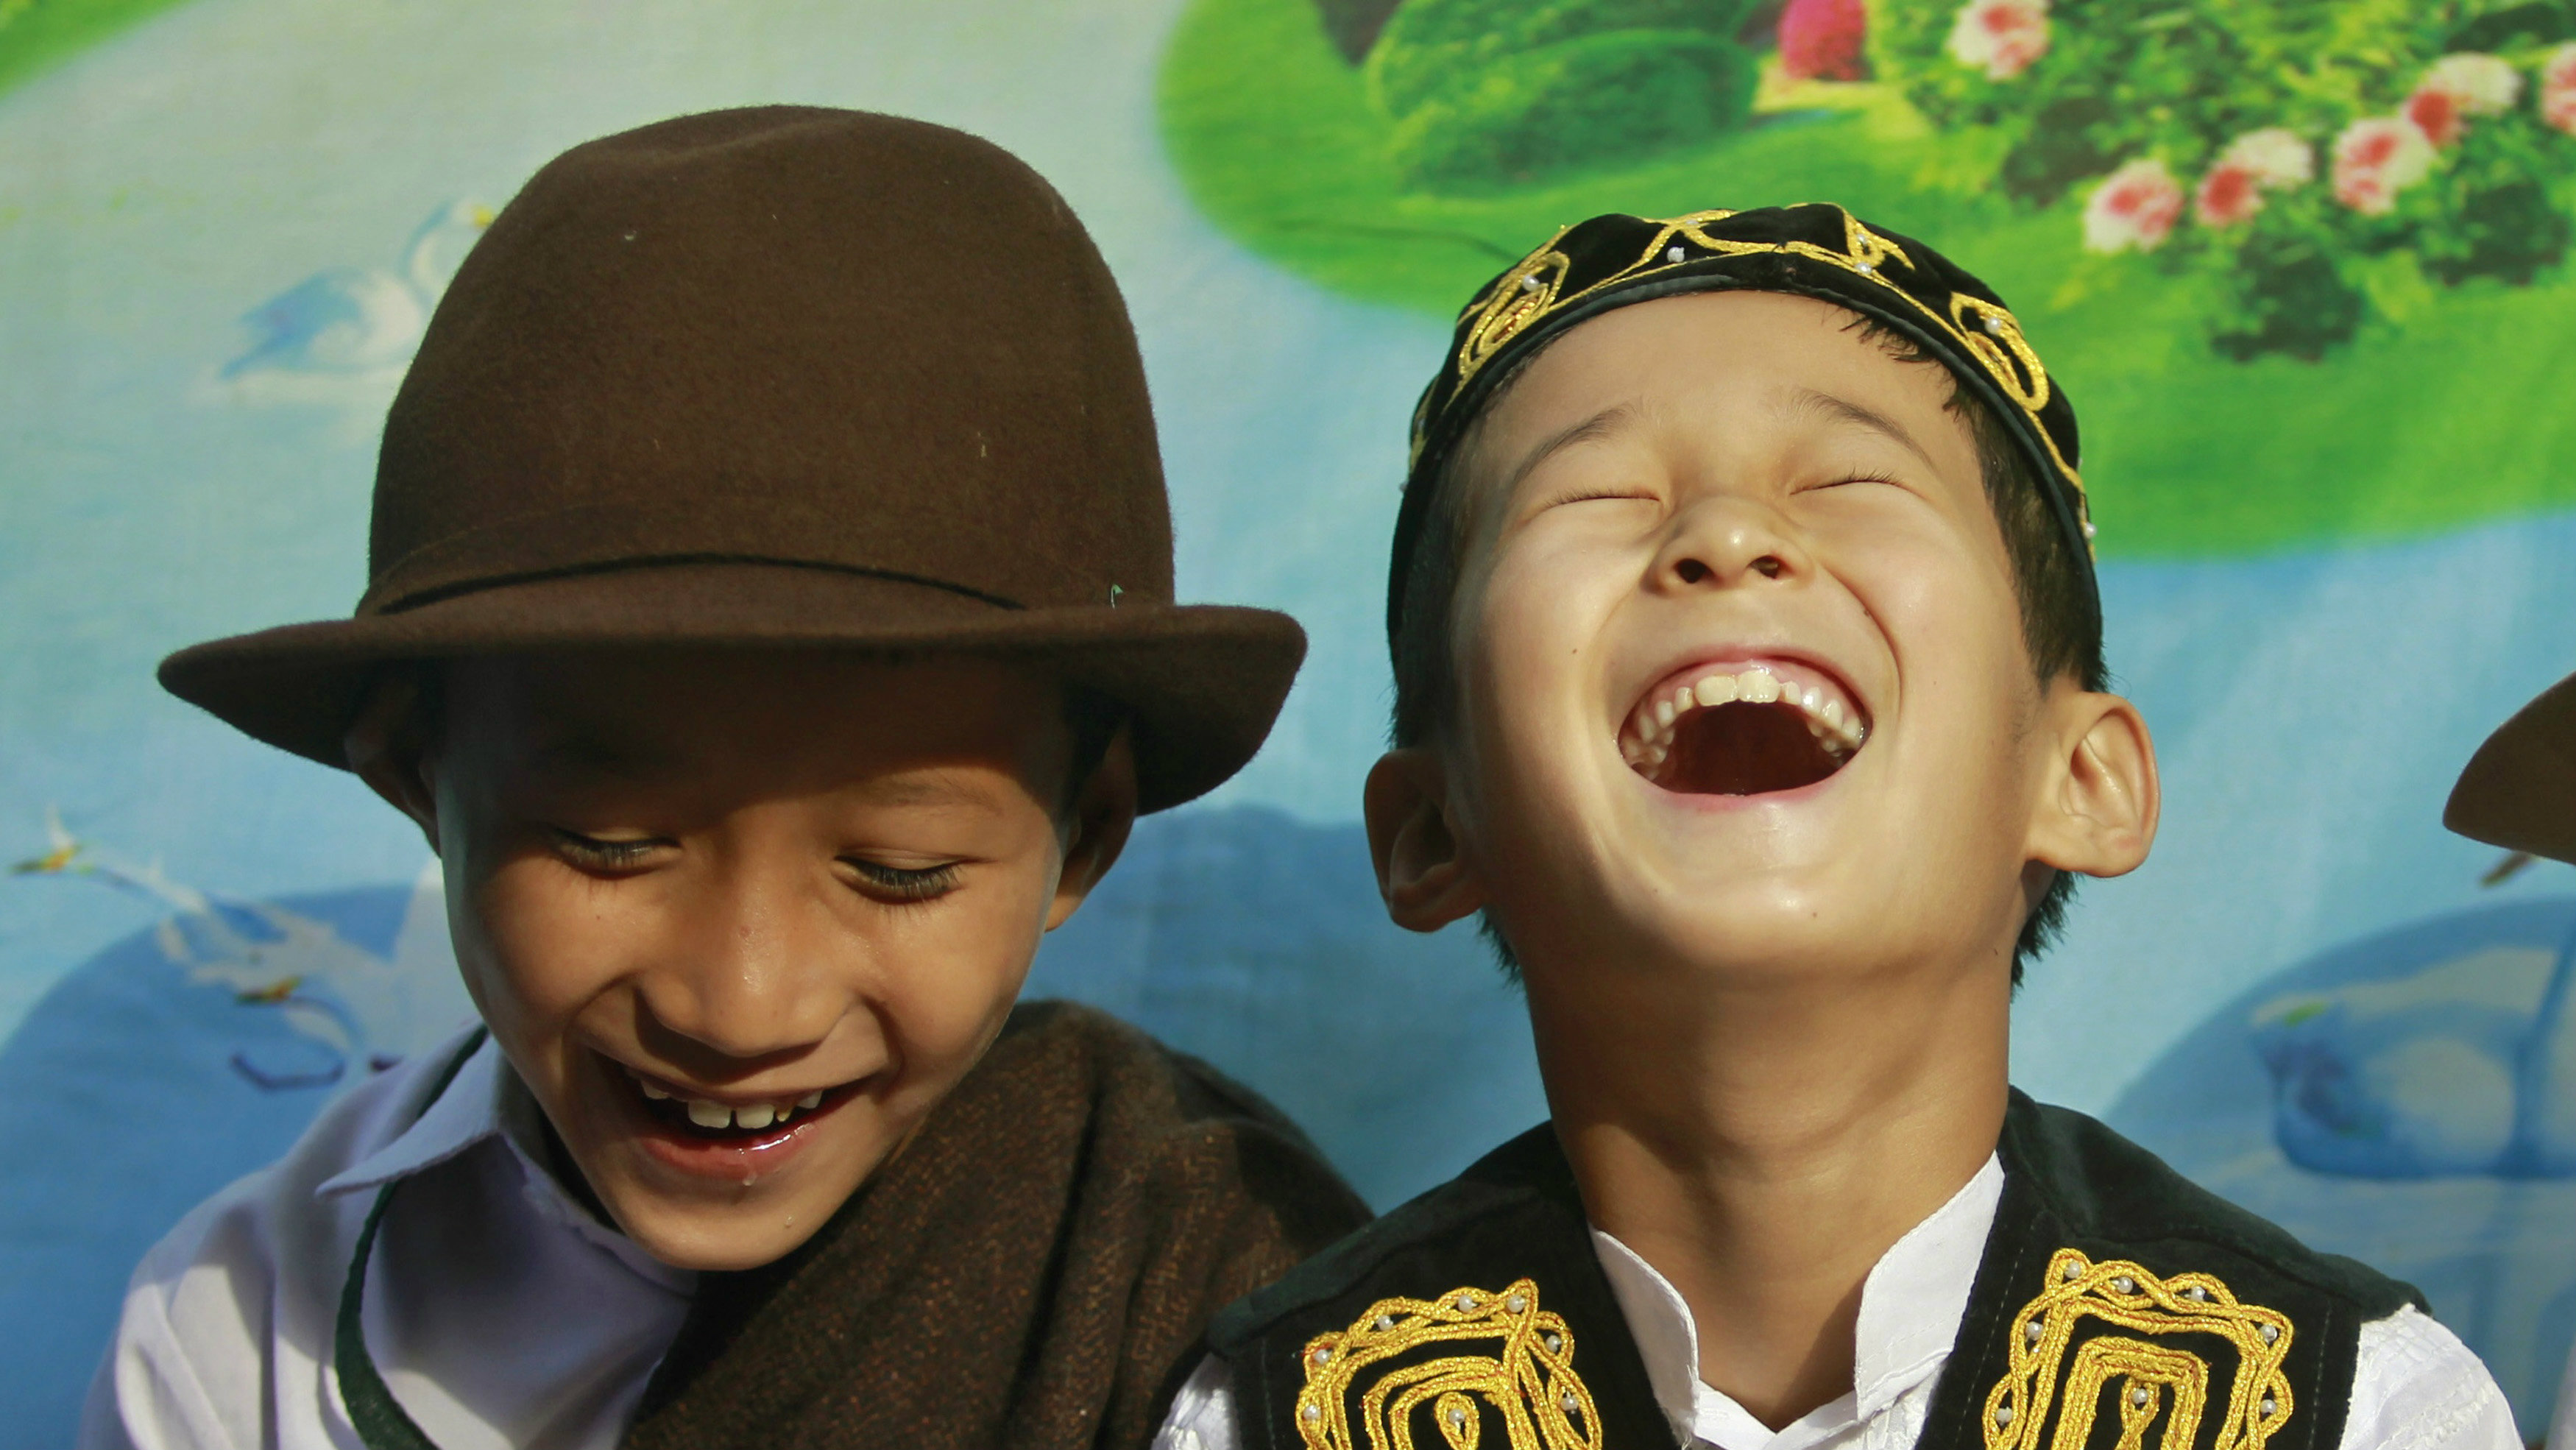 6 Signs You Have A Good Sense Of Humor | HuffPost